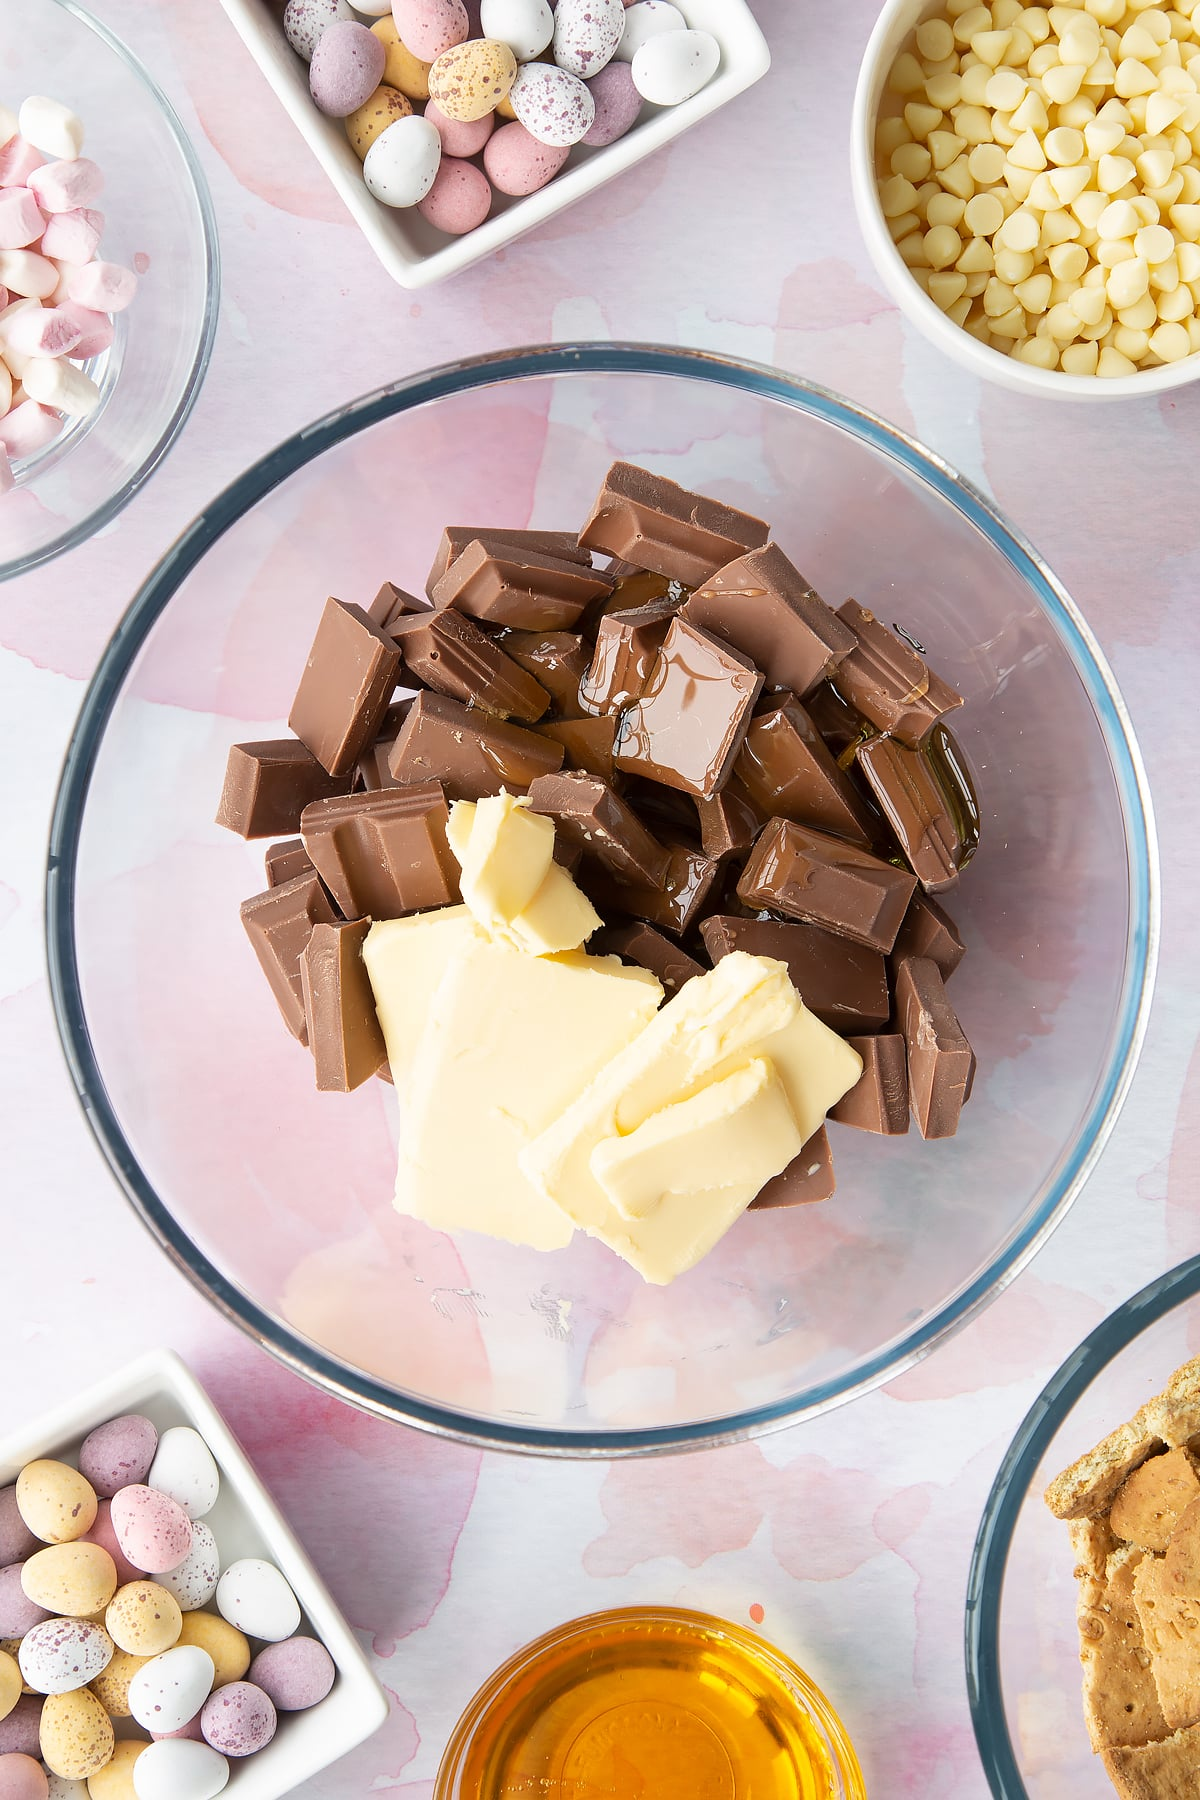 Milk chocolate, butter and golden syrup in a glass mixing bowl. Ingredients to make Mini Egg rocky road surrounds the bowl.